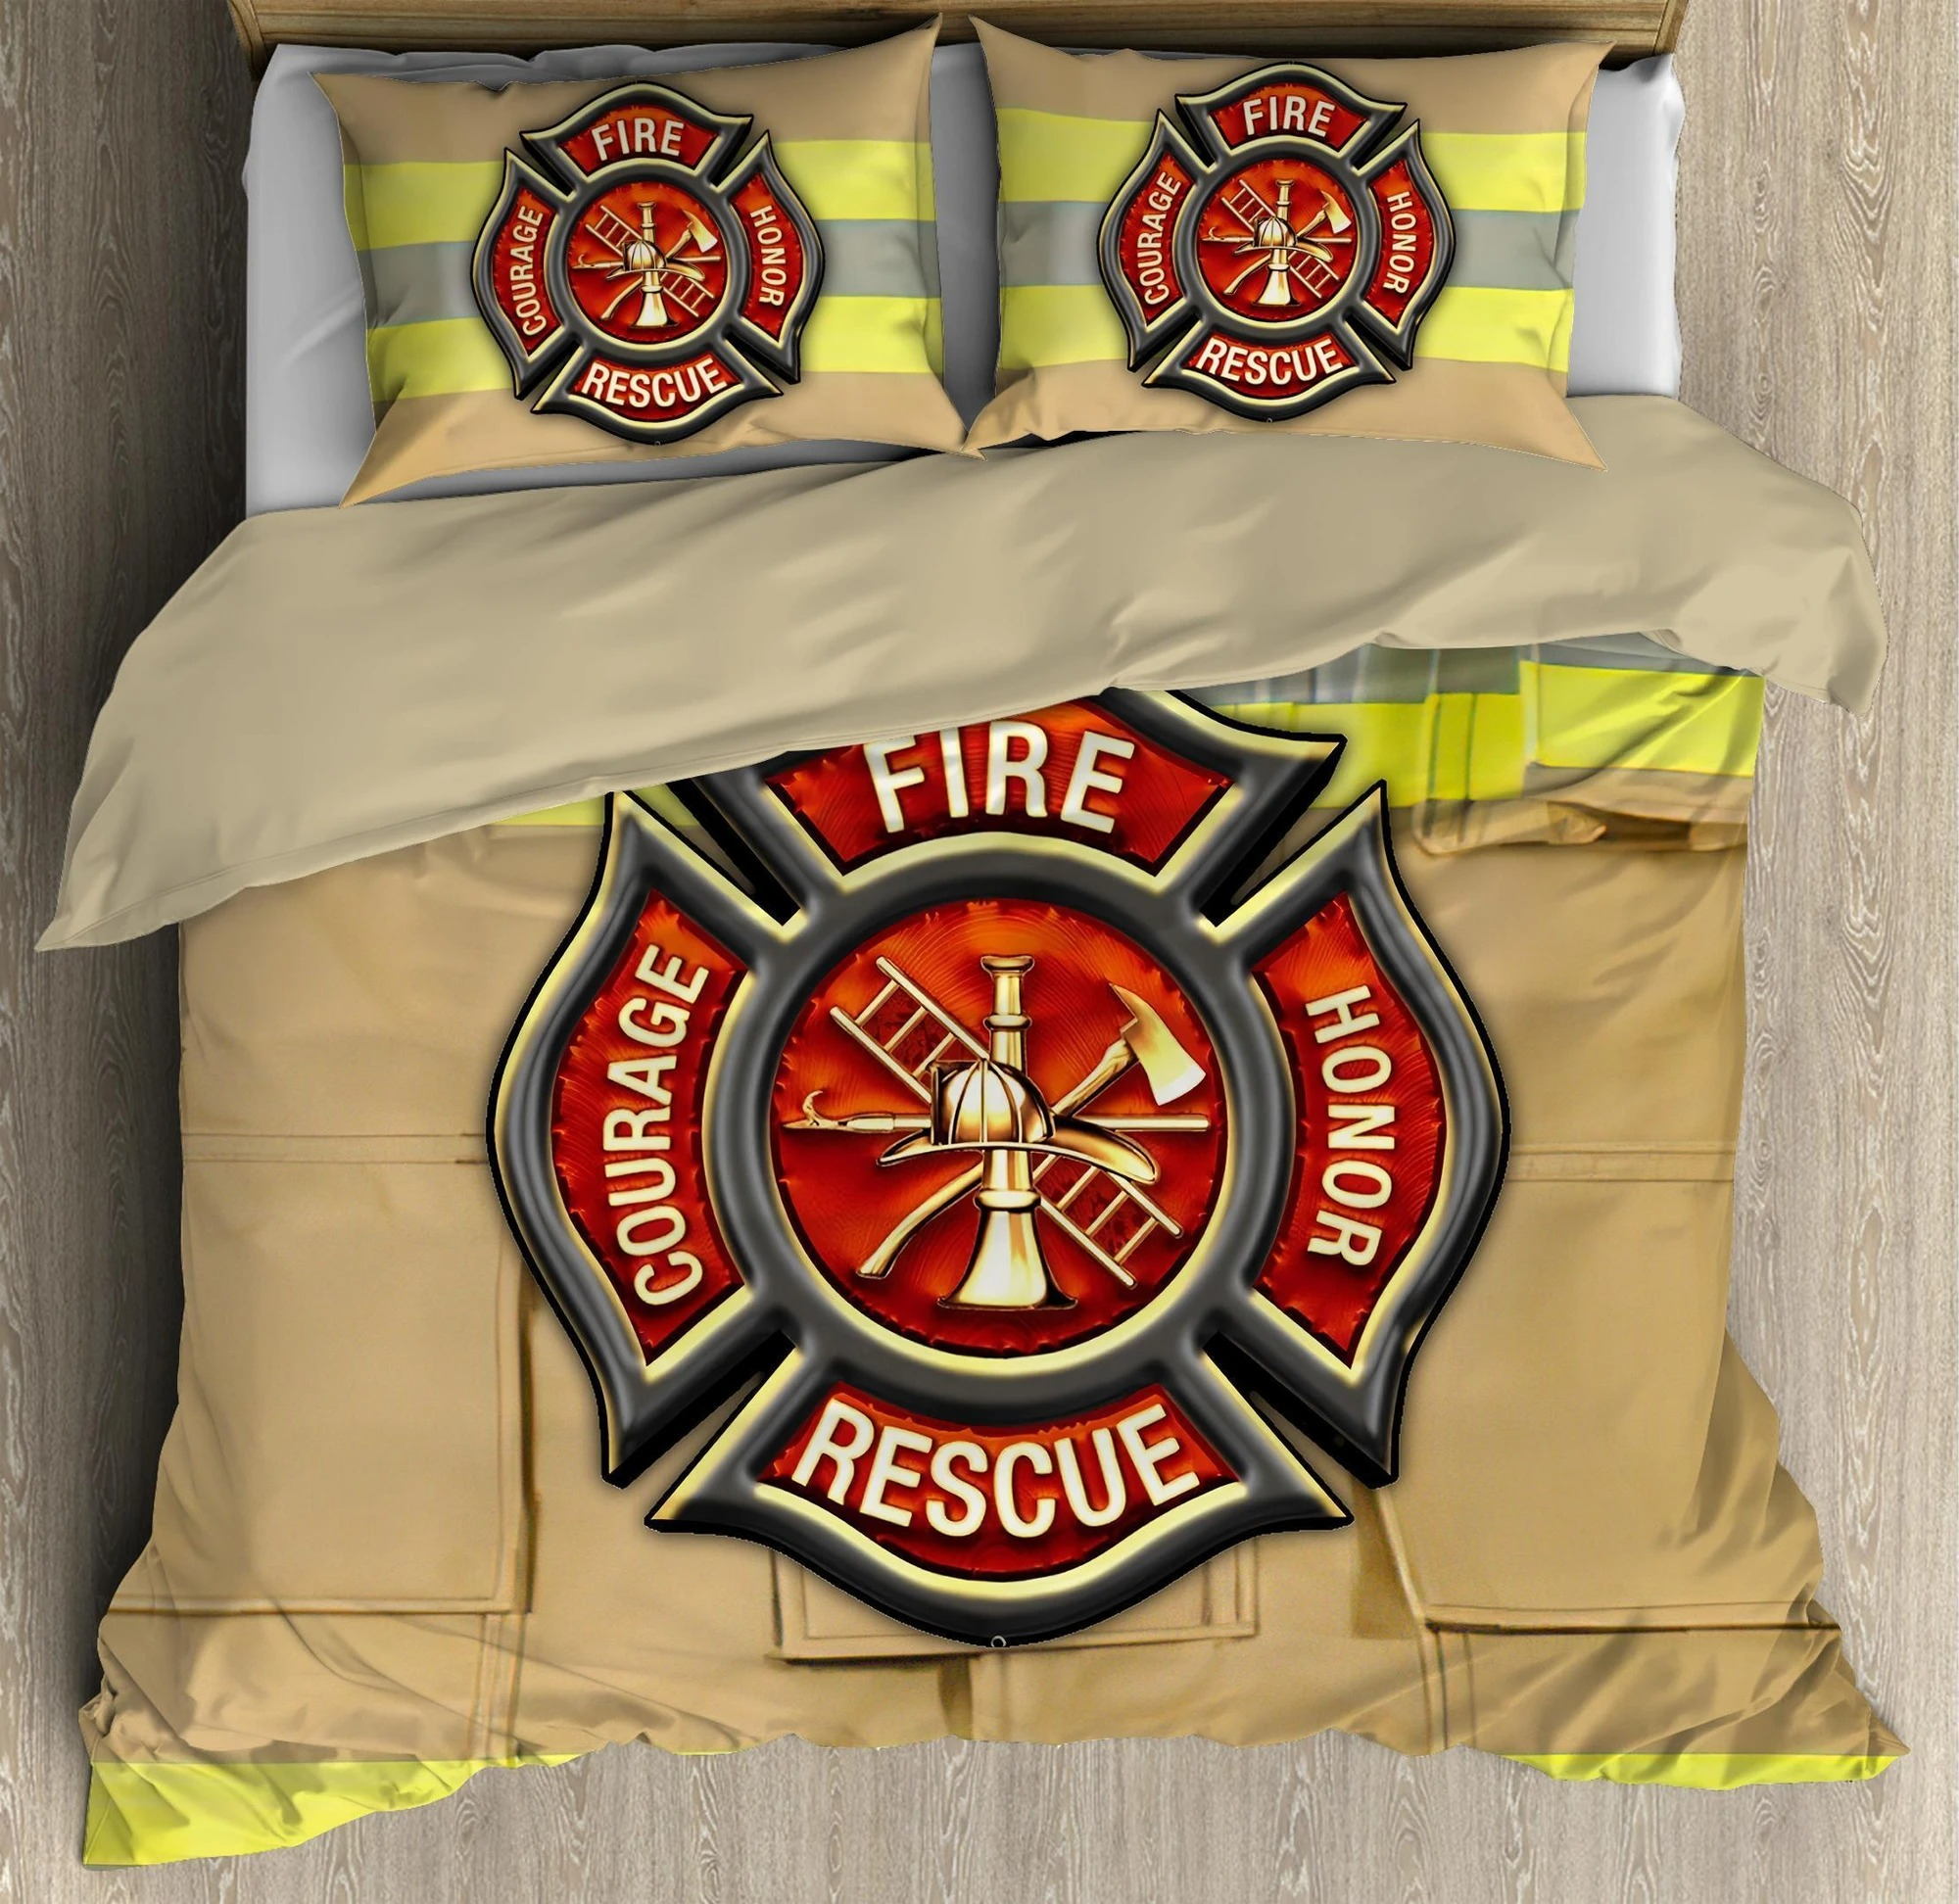 Firefighter Fire Honor Rescue Courage bedding set3